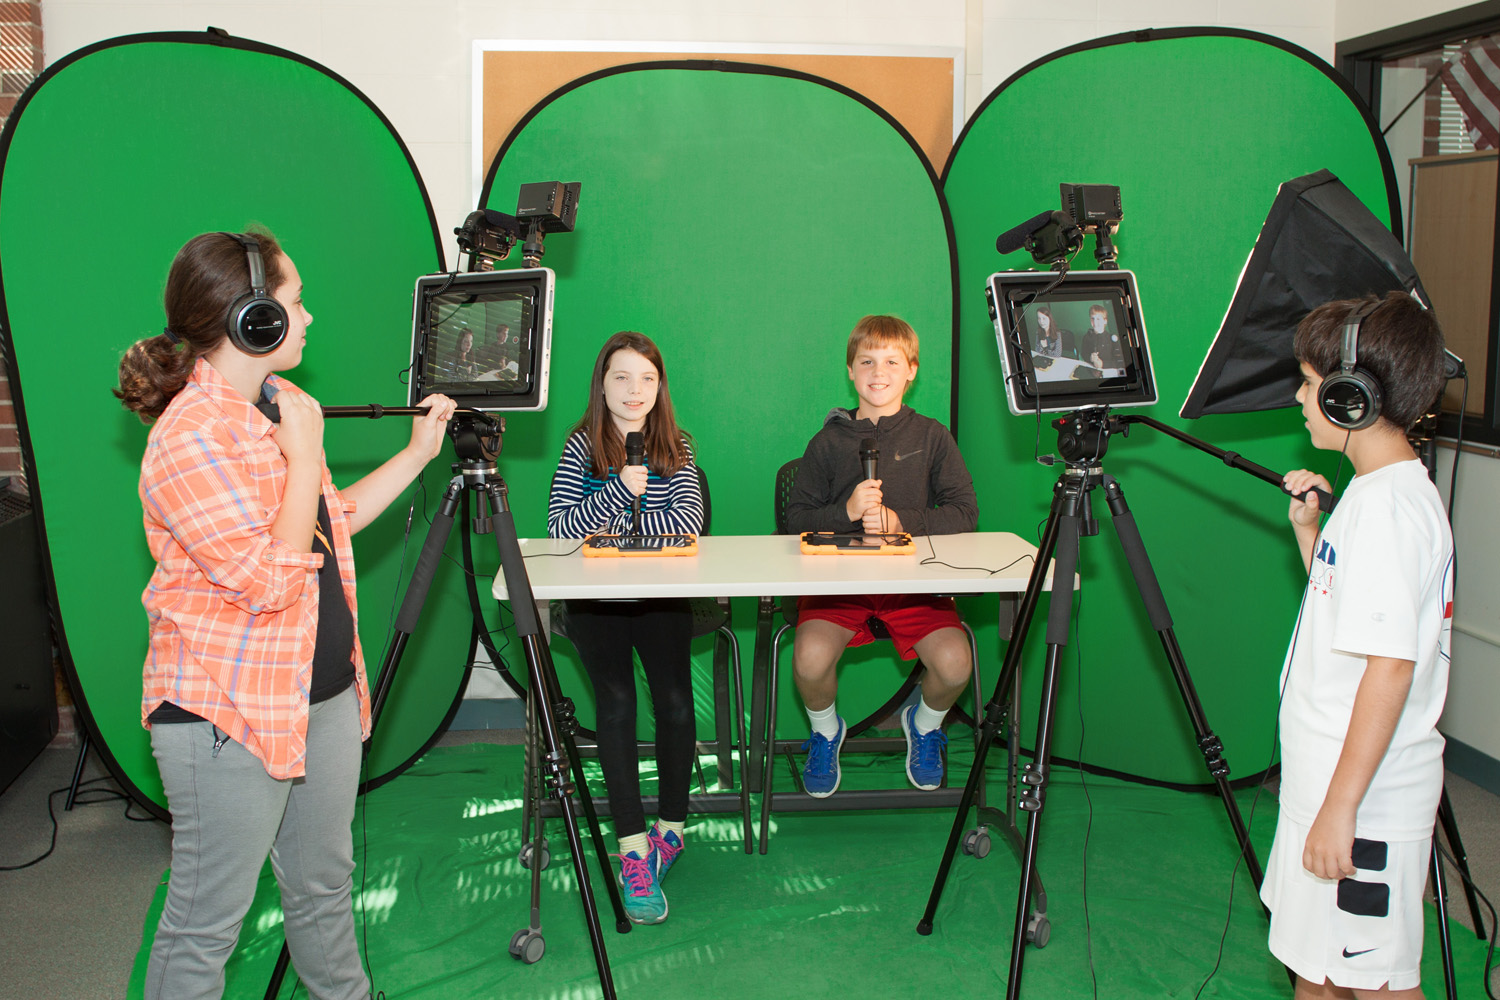 Students using Padcaster systems as part of their production studio.